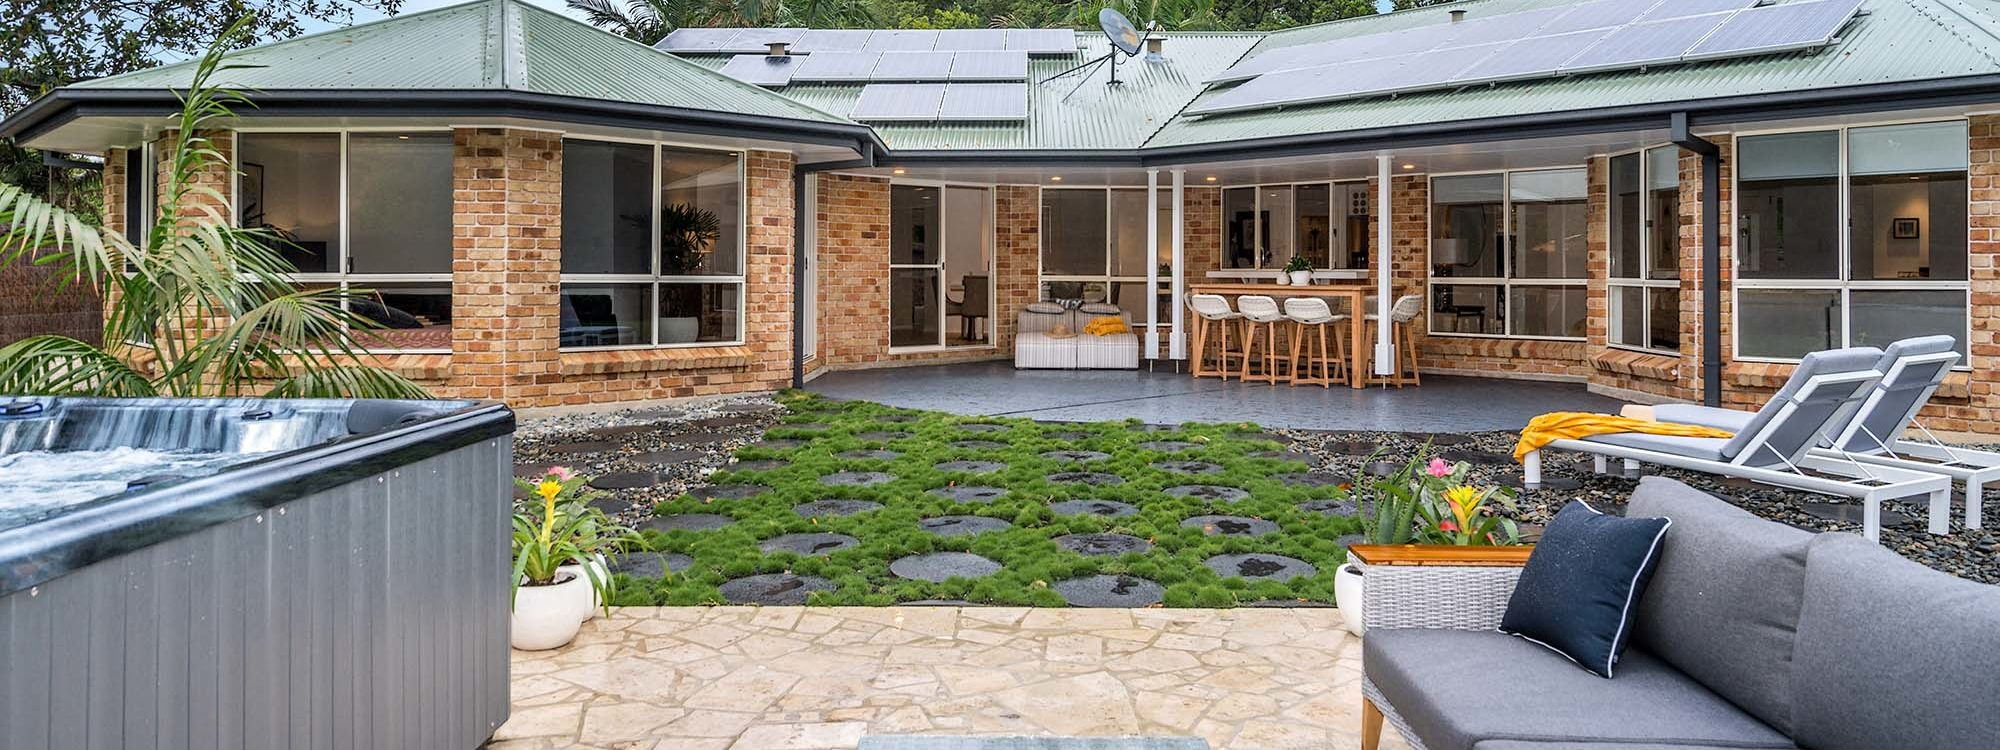 Blues Lodge - Byron Bay - Outdoor Setting and Spa b